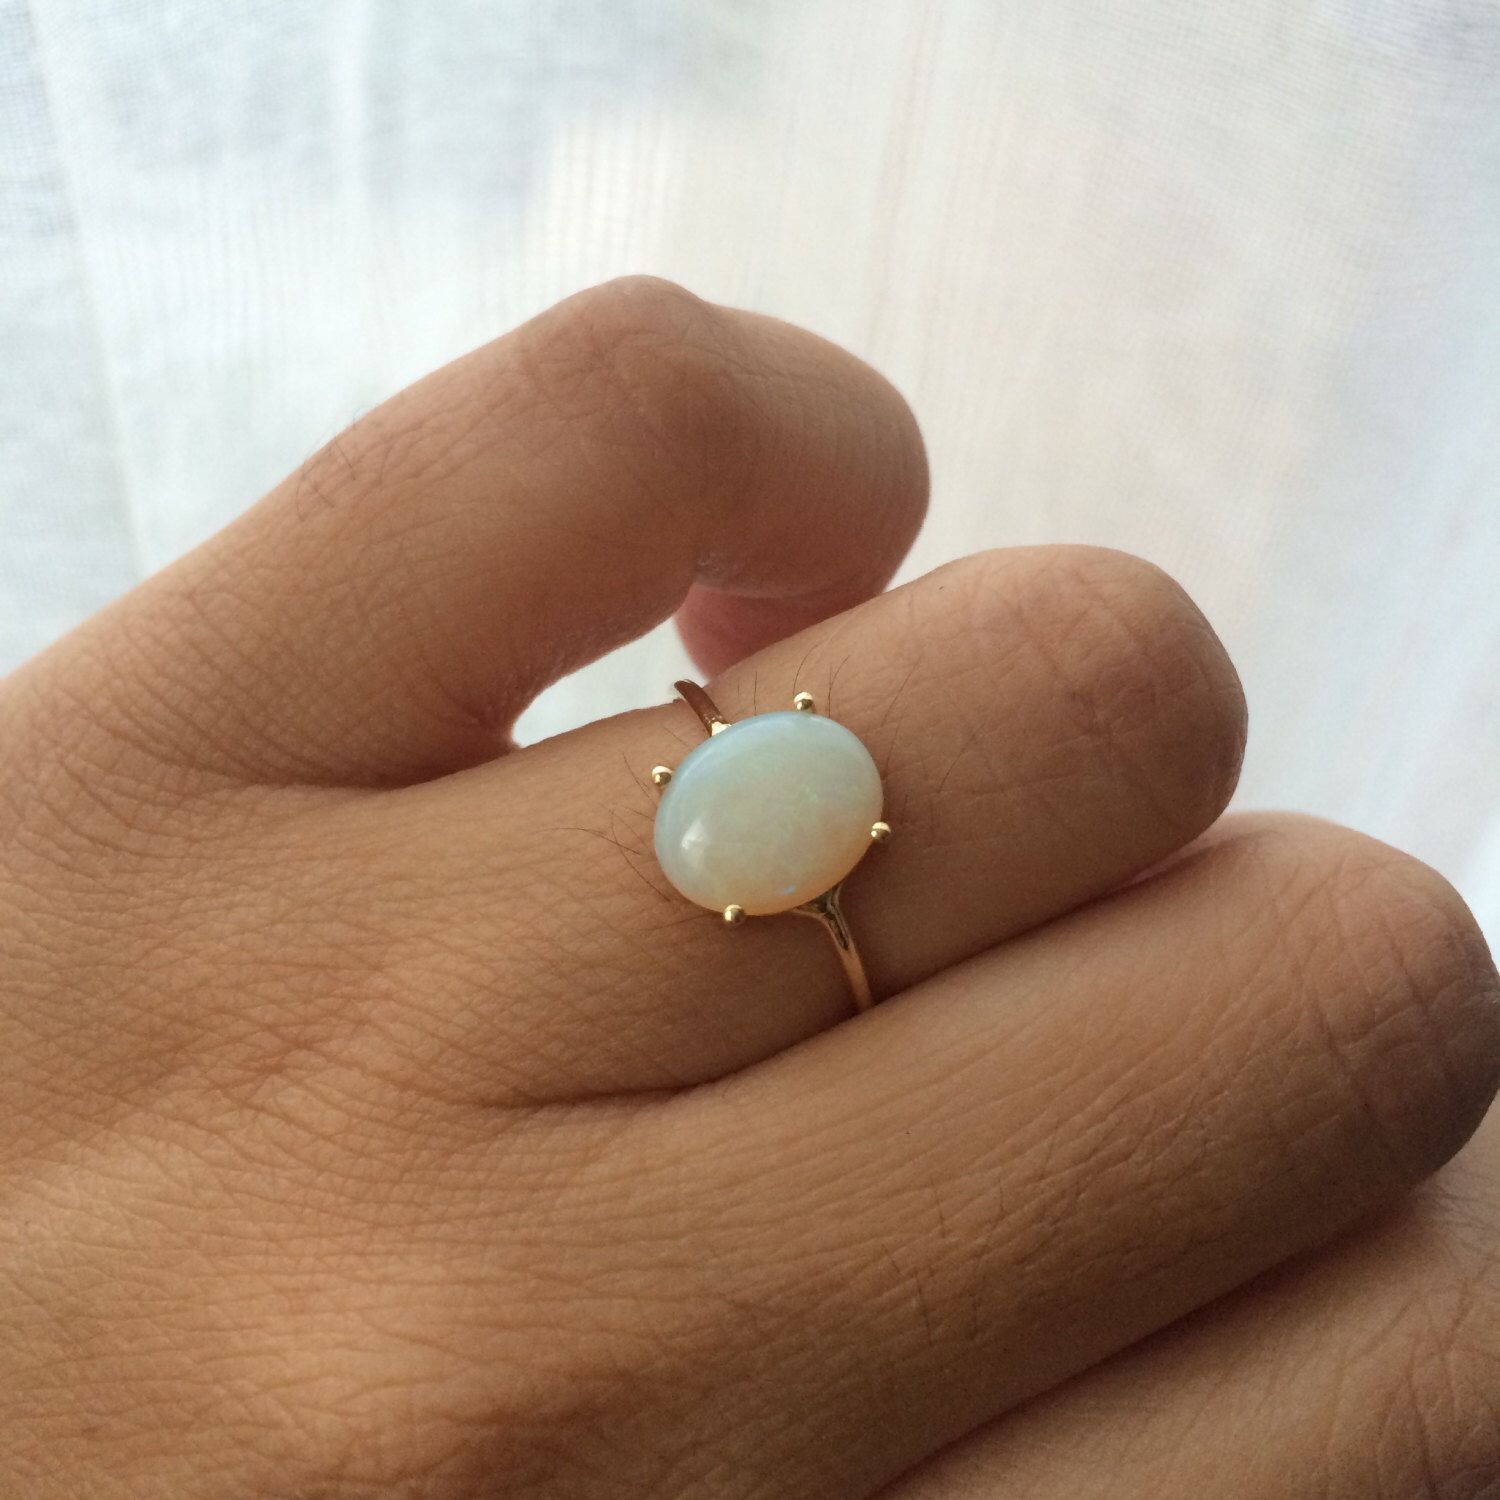 Opal Ring Opal Engagement Ring 14k Opal Ring Opal Solitaire